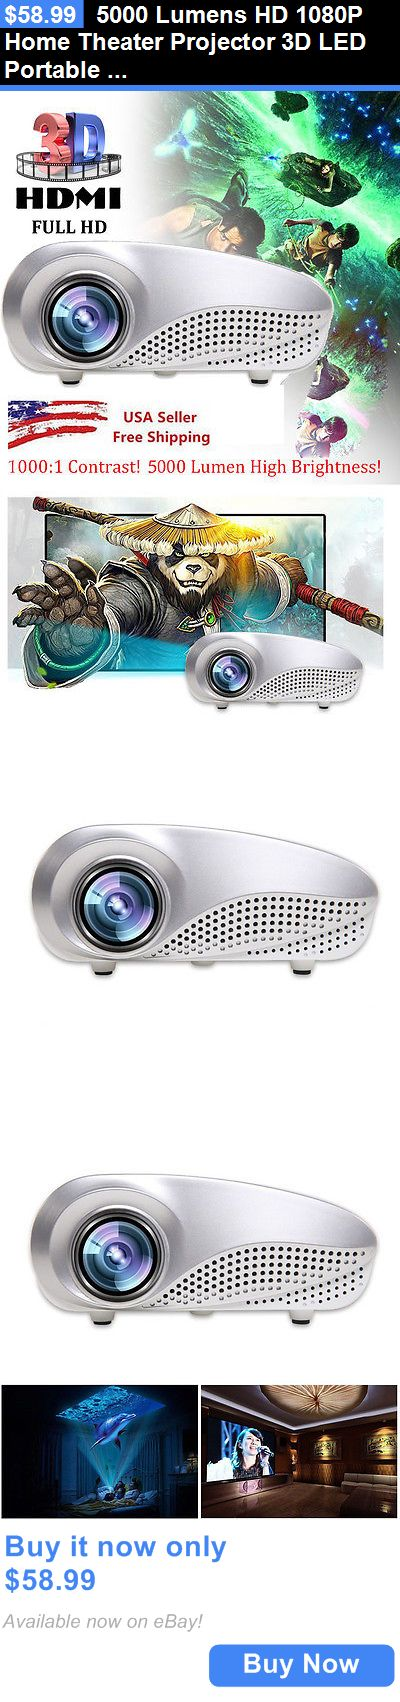 Home Audio: 5000 Lumens Hd 1080P Home Theater Projector 3D Led Portable Sd Hdmi Vga Usb New BUY IT NOW ONLY: $58.99